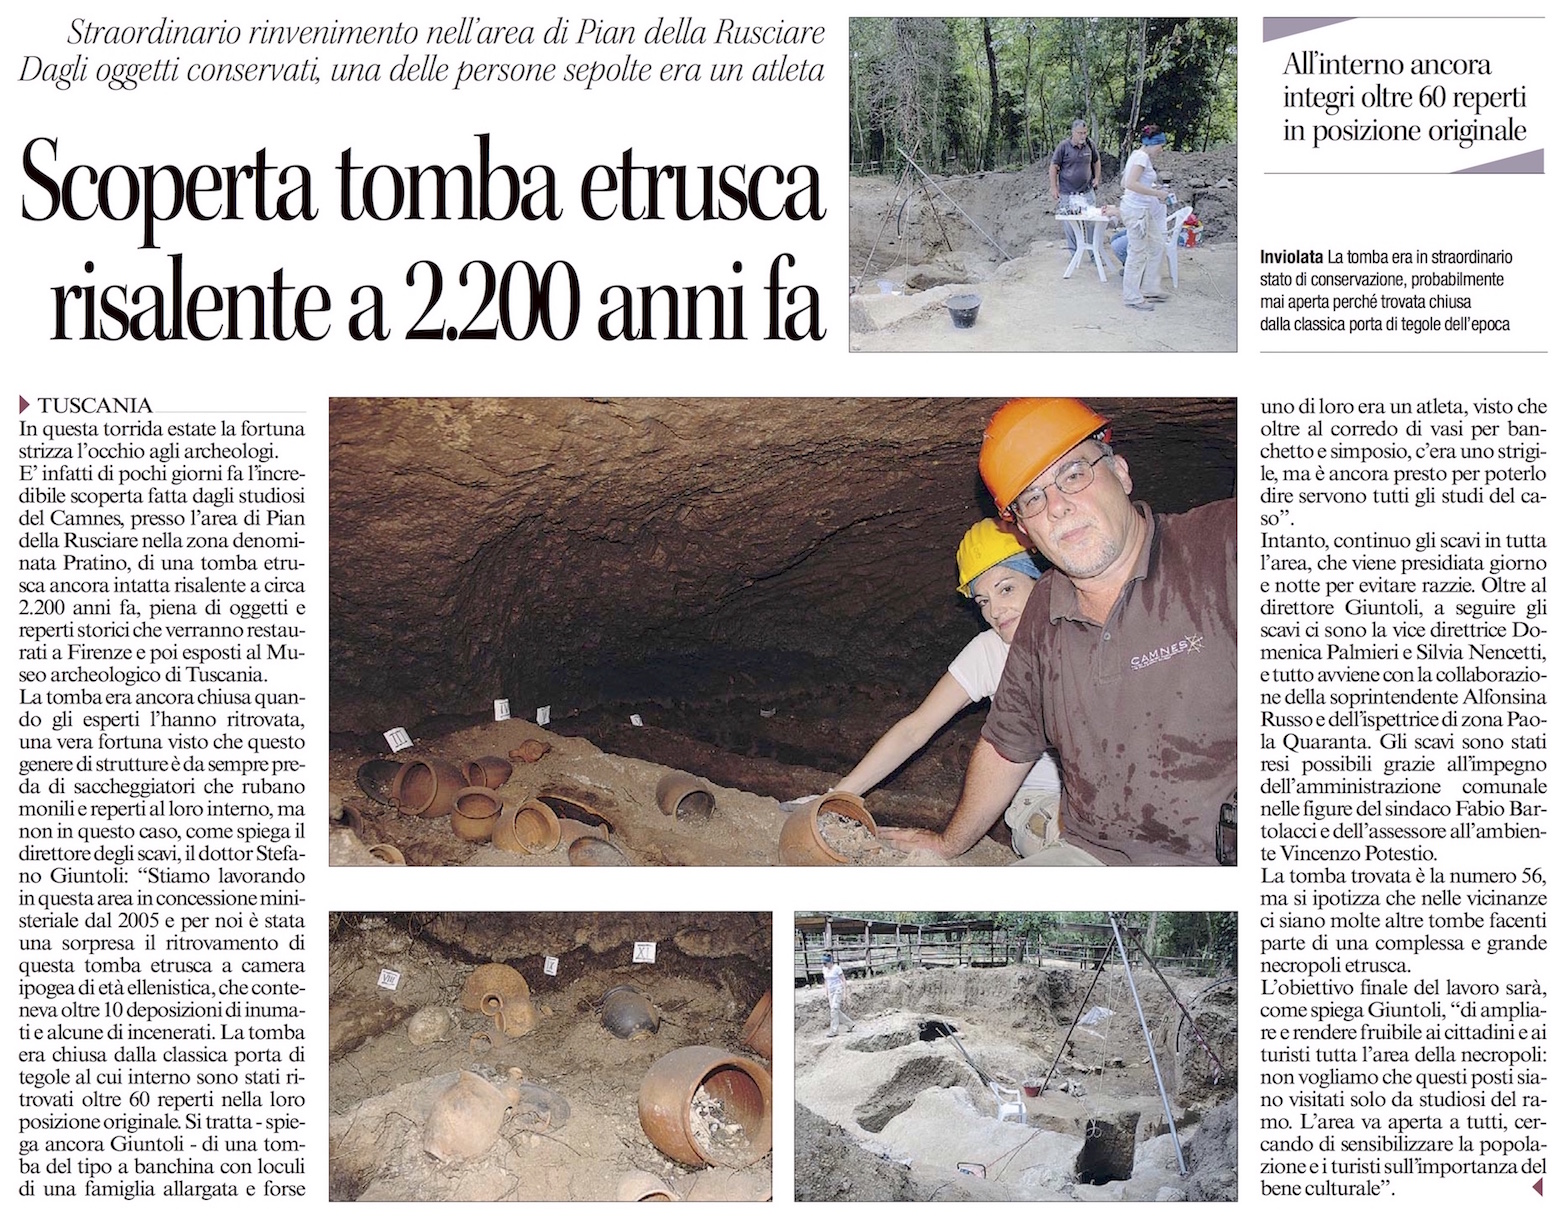 Discovered intact tomb in Tuscania